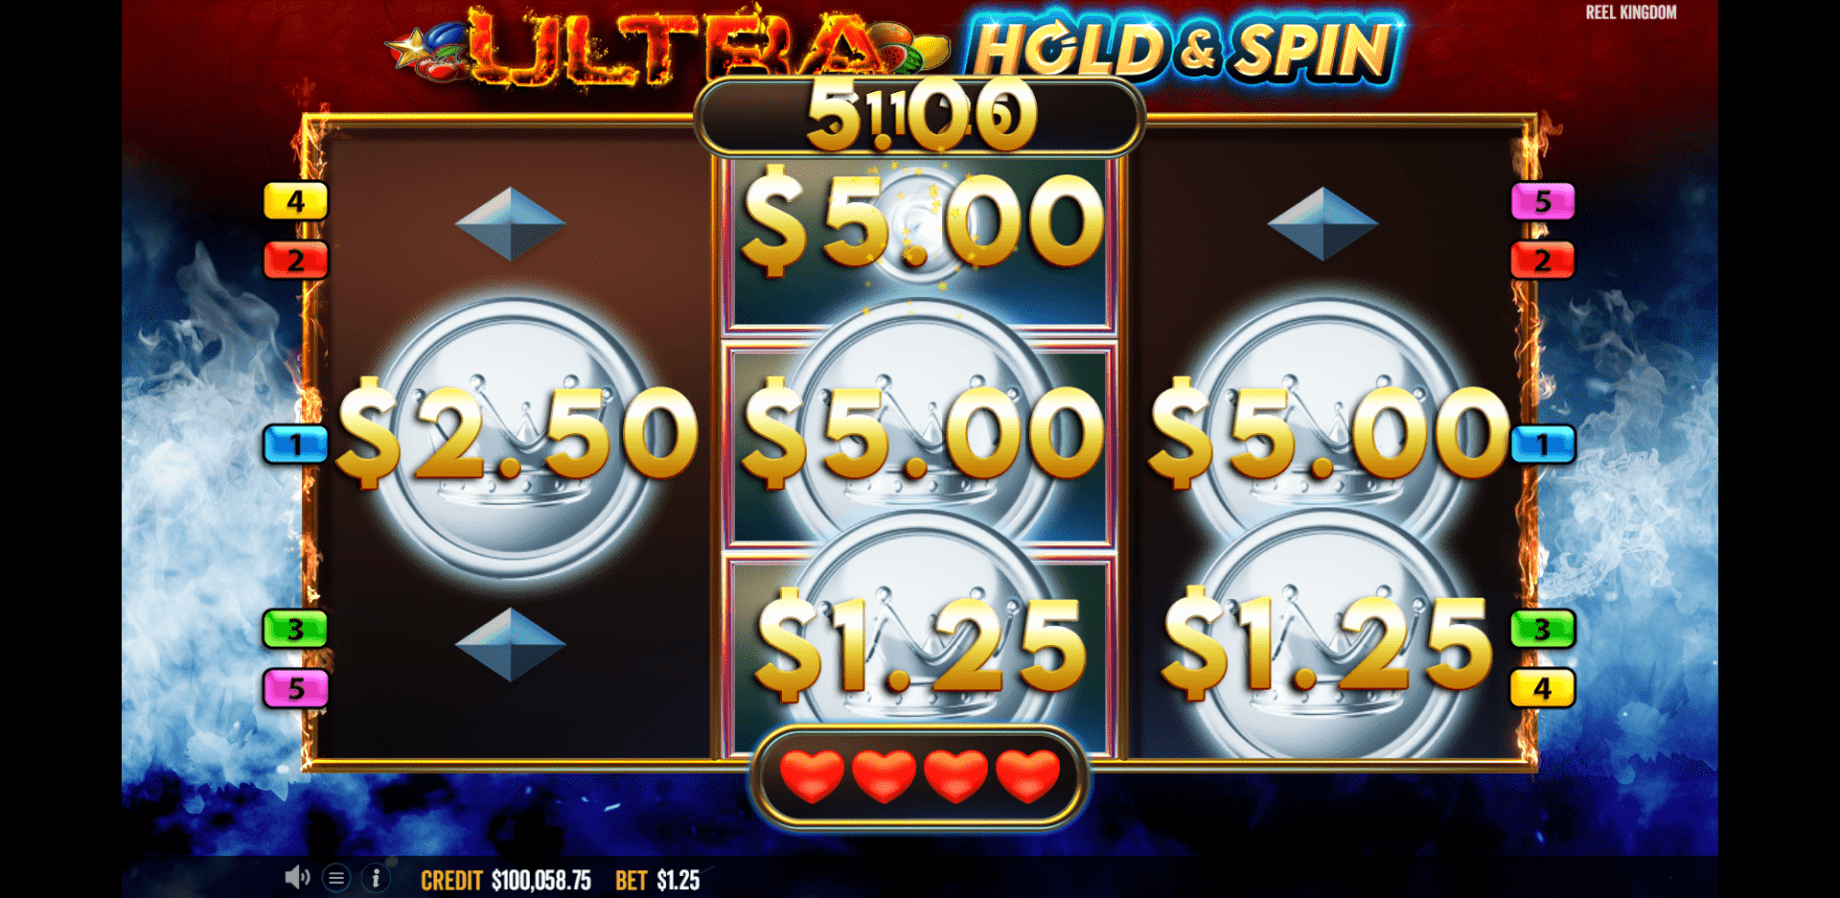 Ultra Hold & Spin Fitur Koin Respin